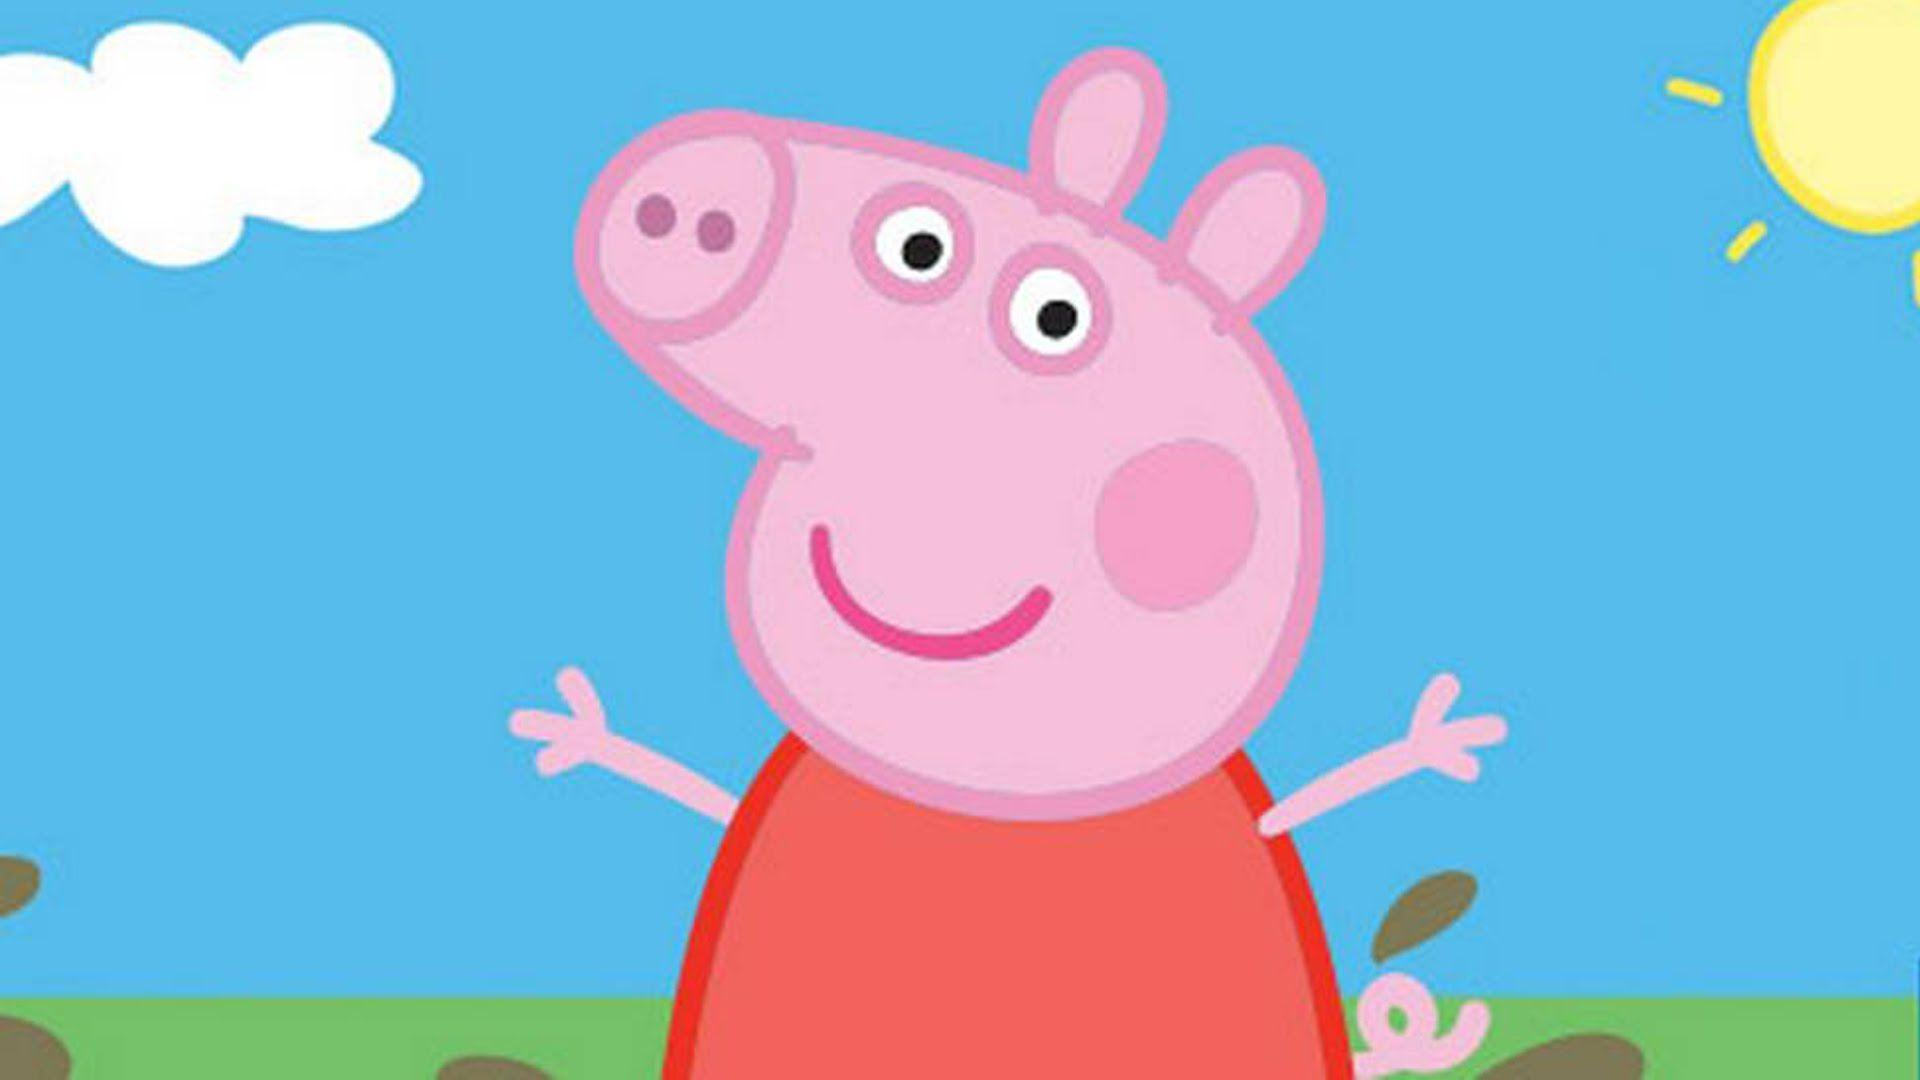 Peppa Pig Wallpapers Group